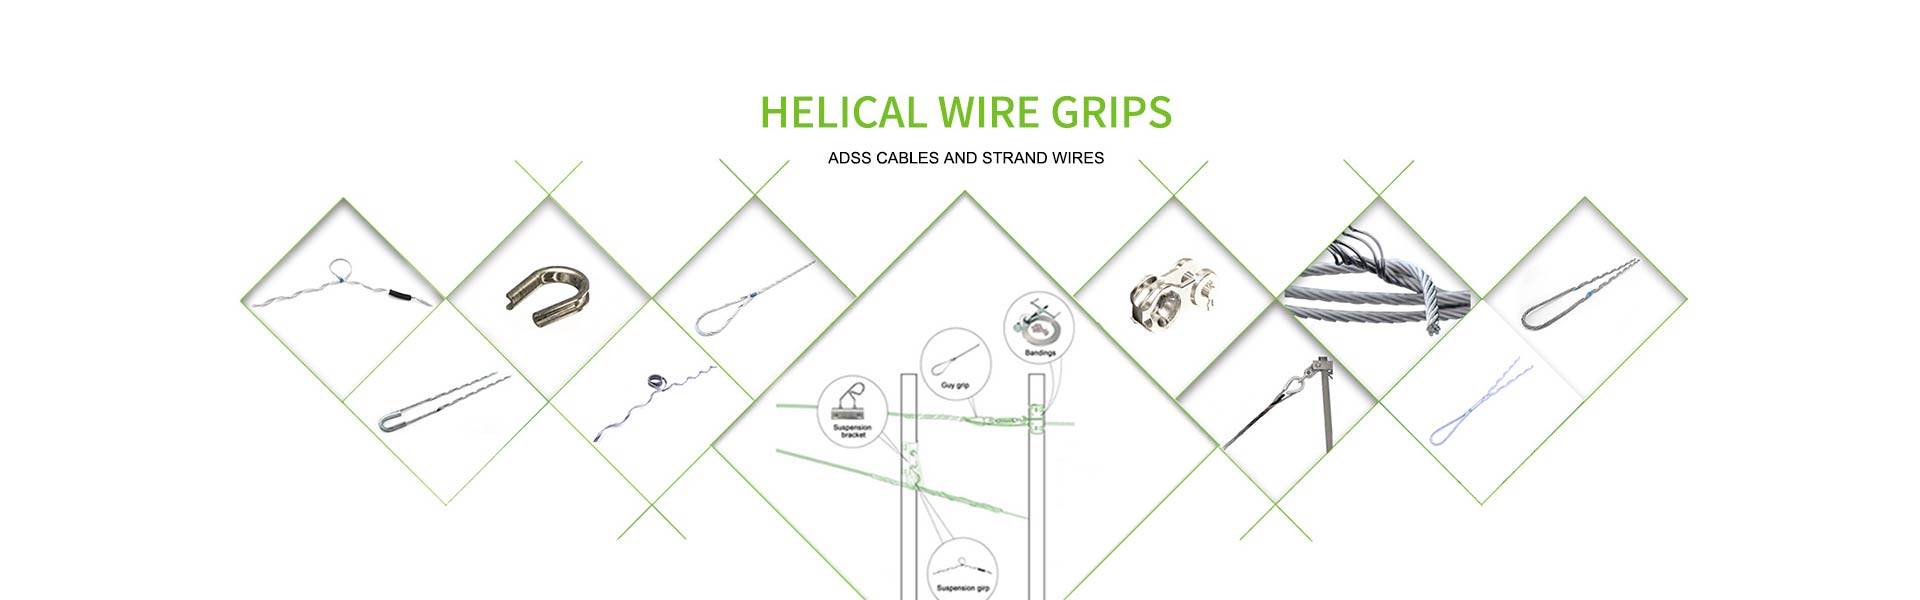 Preformed guy grips, strand wire grips